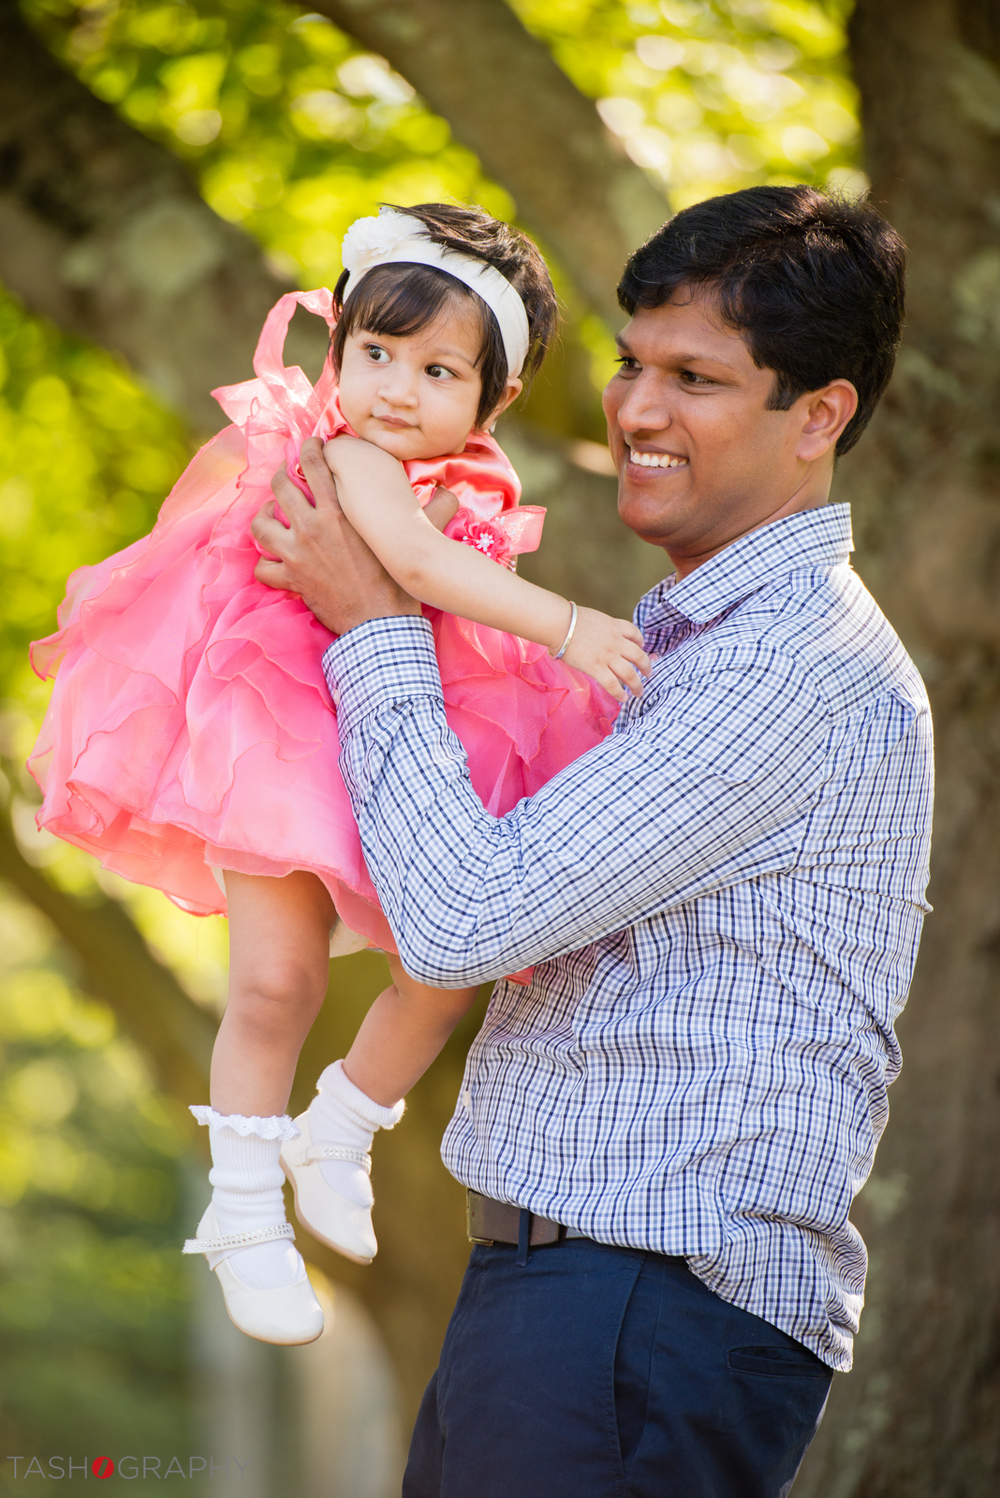 Aarohi-First-Bday-Web-8.jpg